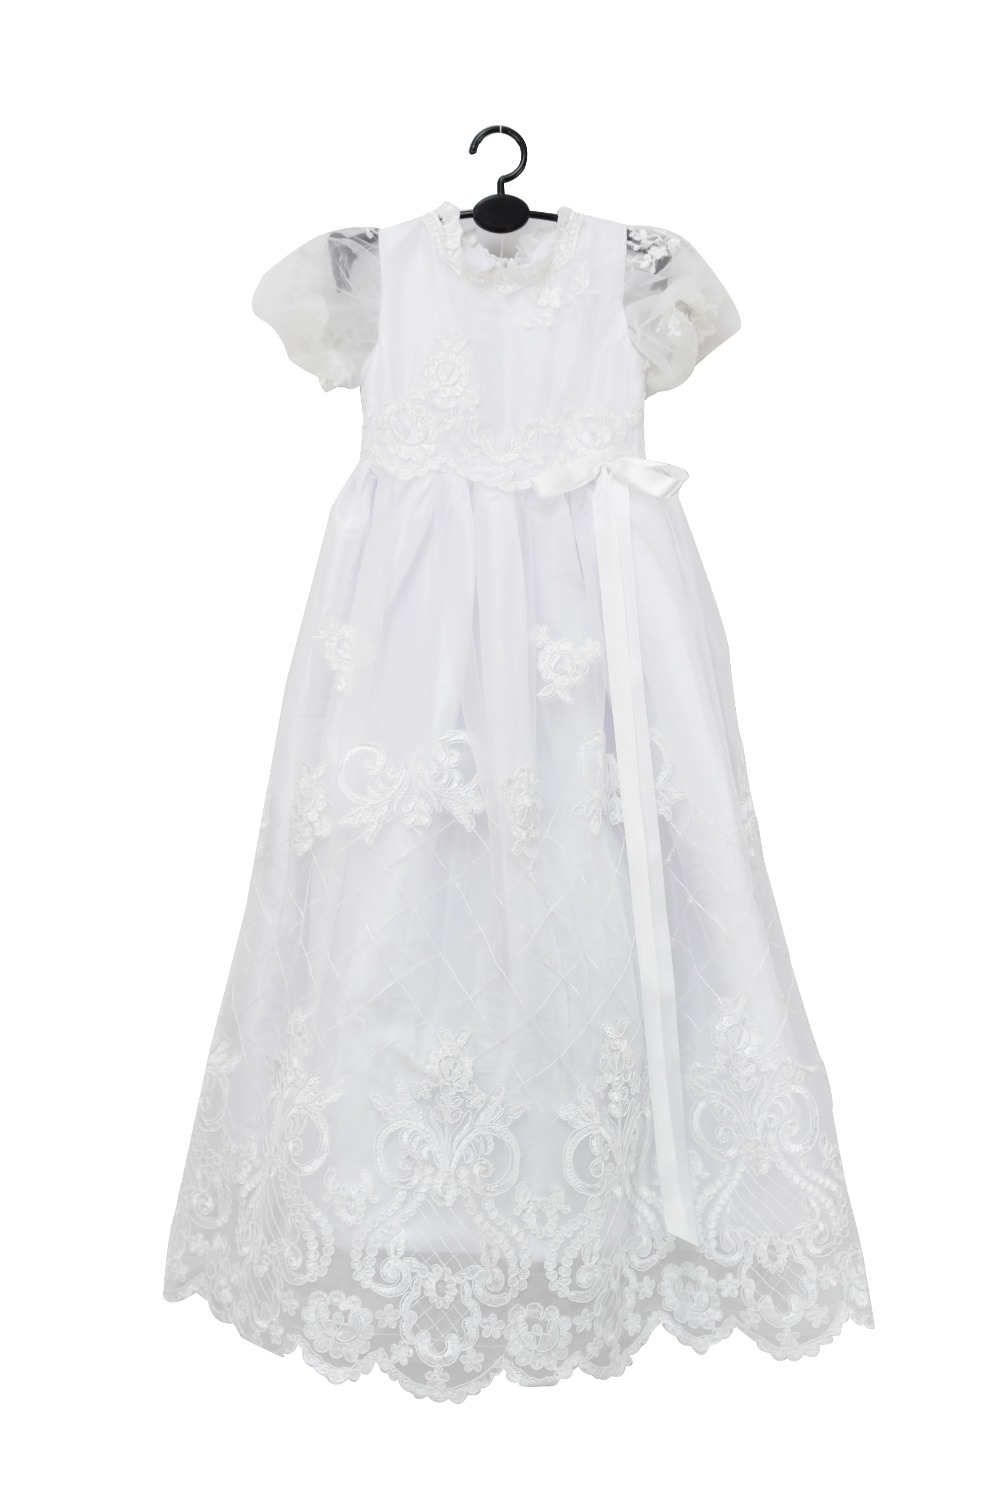 Advanced Lace White christening dresses with hats ,Elegant newborn party dresses ,baptism dresses for infant girls 1327<br><br>Aliexpress